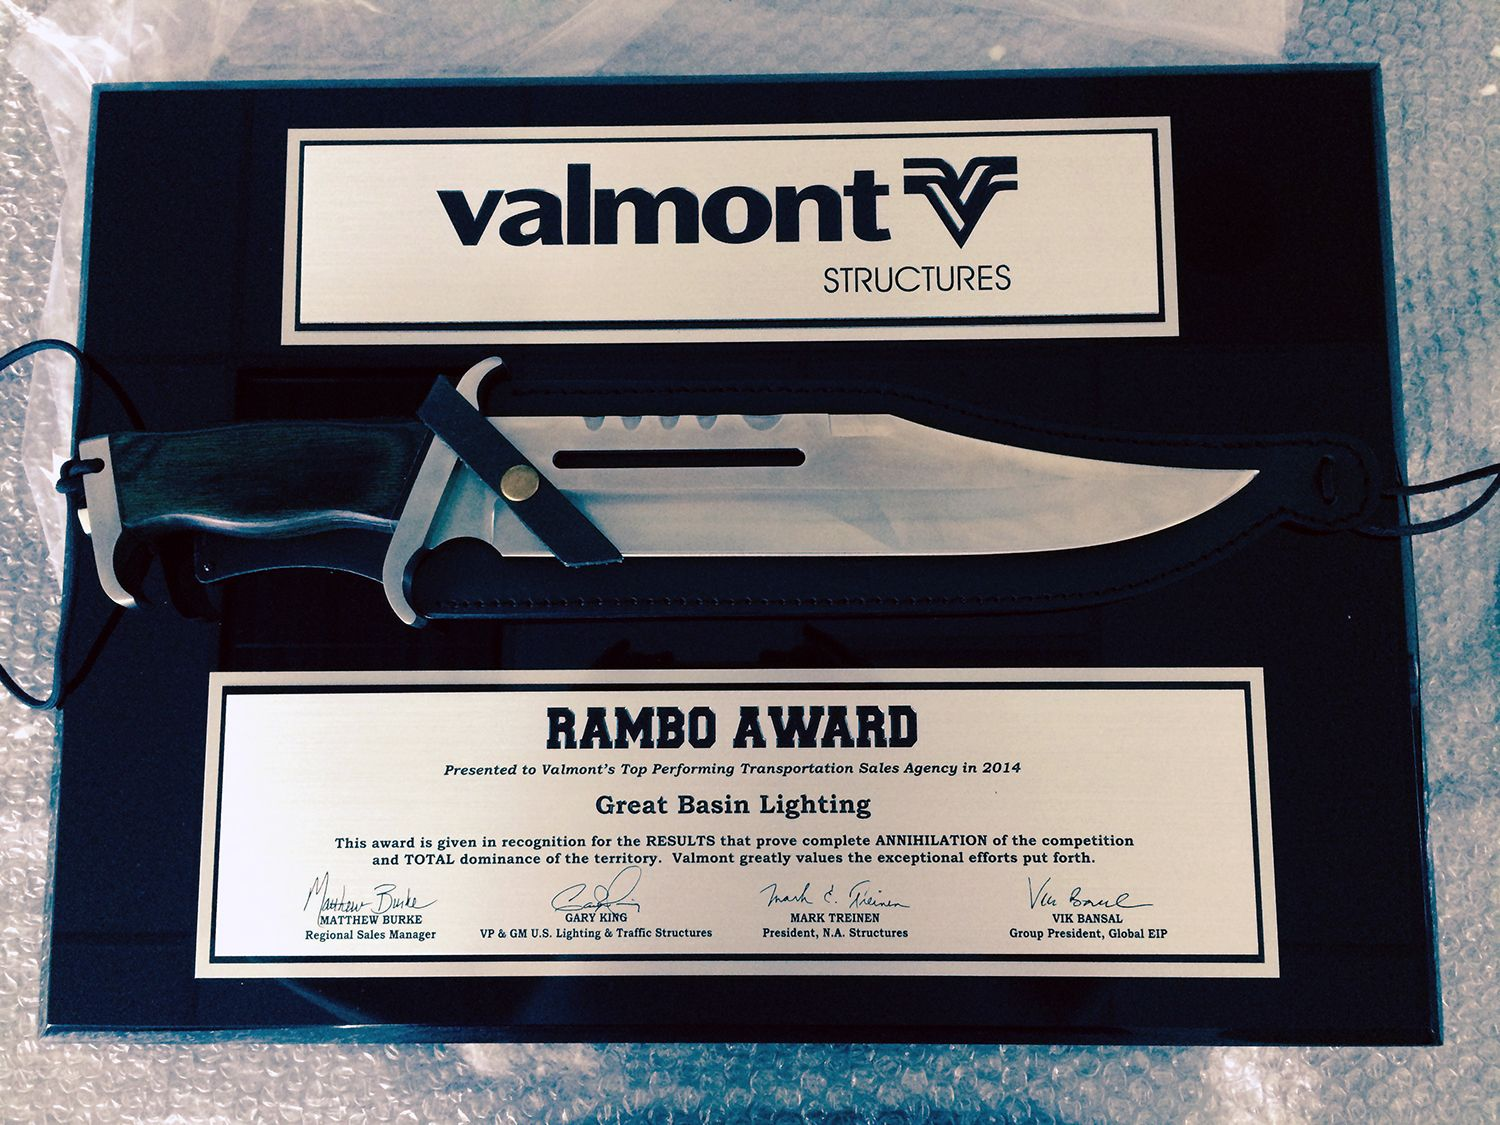 We Are Very Honored To Receive The Rambo Award For Being Valmont S